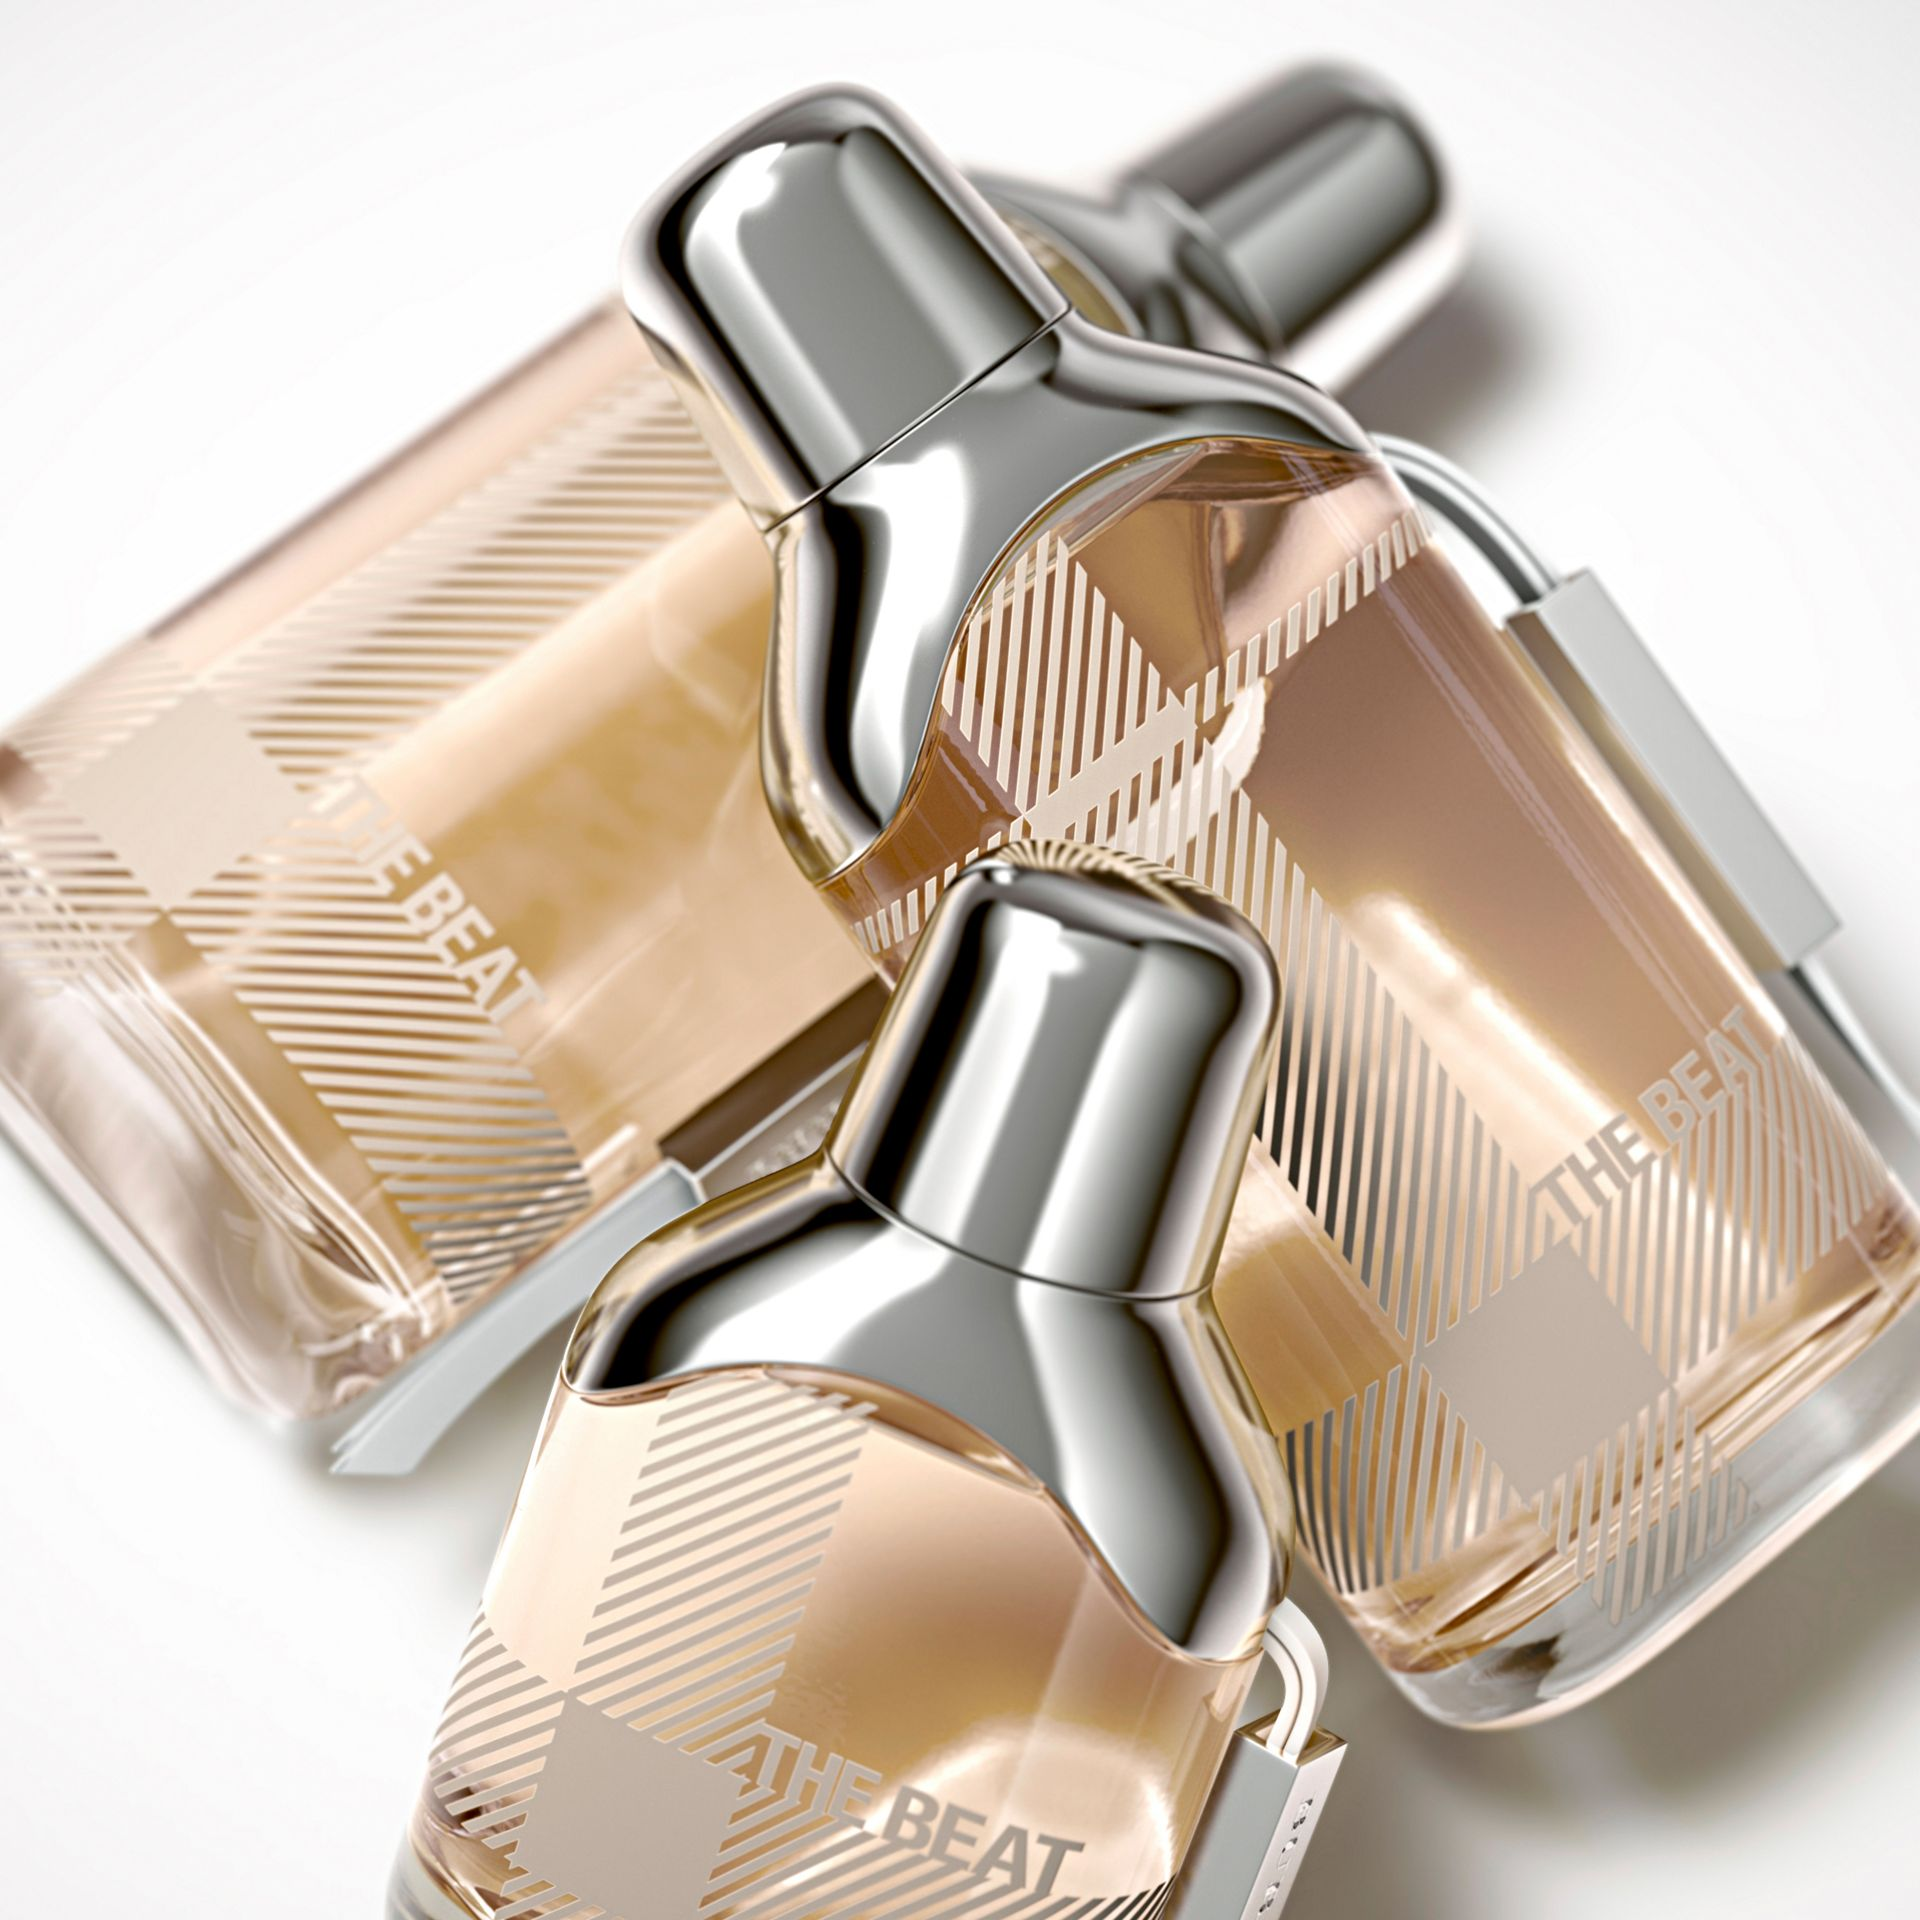 Burberry The Beat Eau de Parfum 75ml - Women | Burberry - gallery image 2